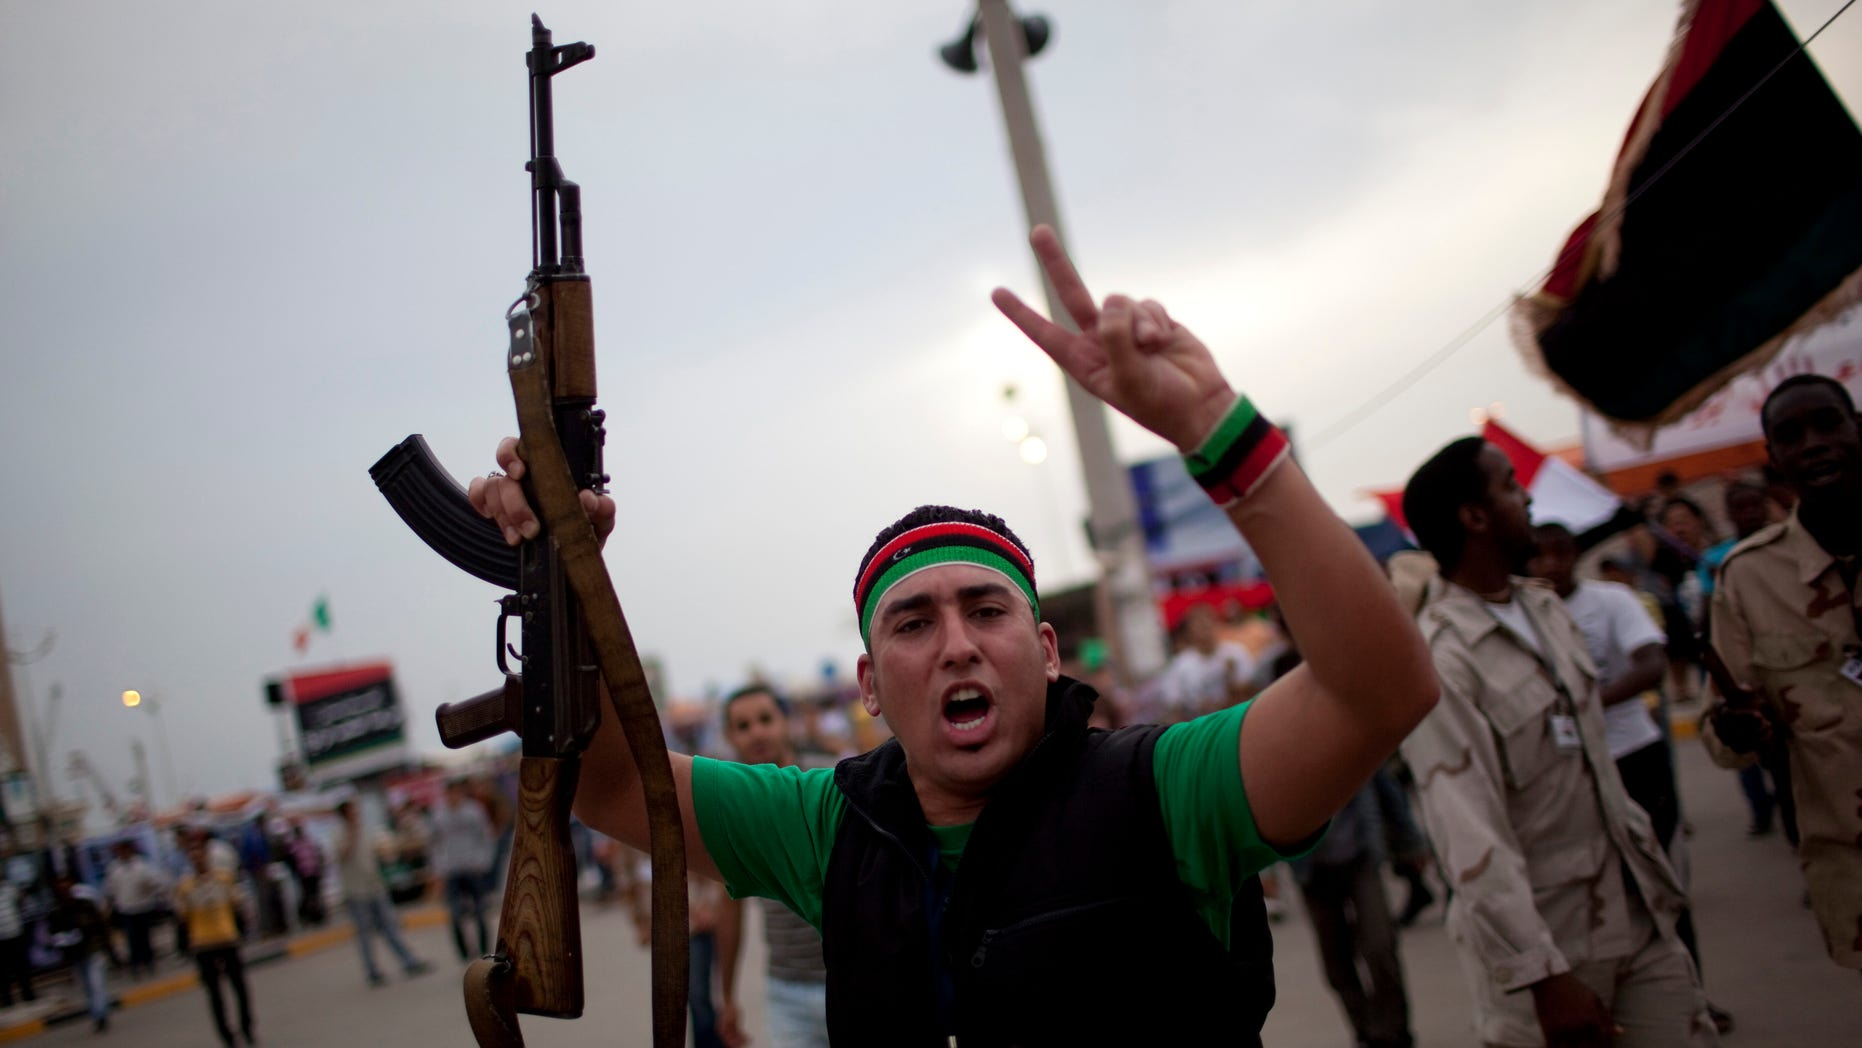 A man chants anti-Muammar Qaddafi slogans during a protest in the rebel strong hold of Benghazi, Libya, Thursday, June 2, 2011. (AP)